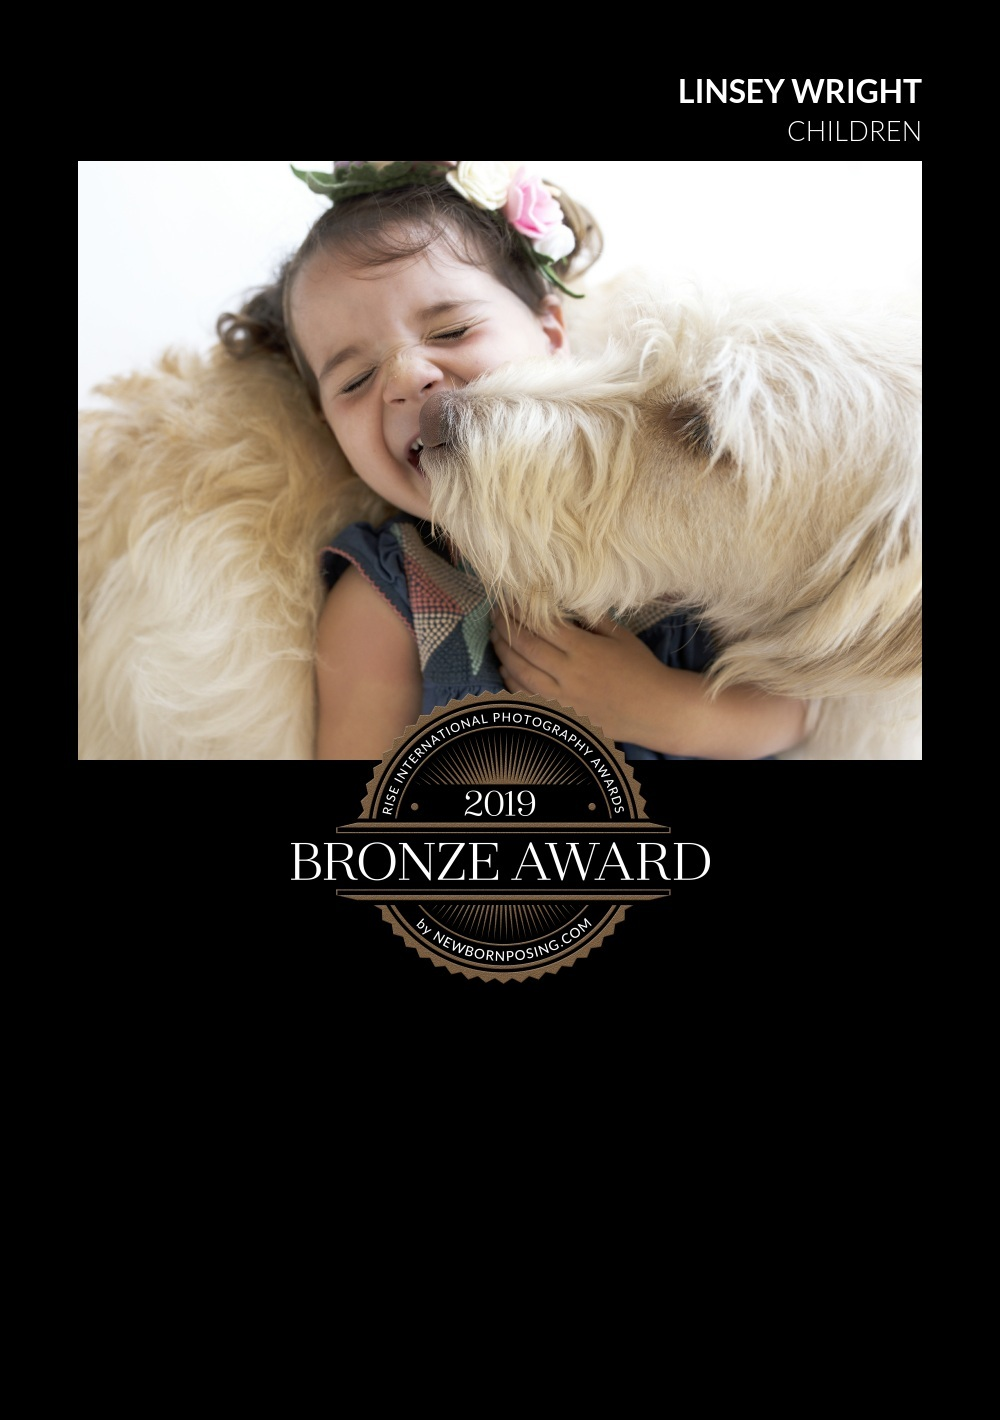 Bronze Award  - Not to long ago, I entered a couple of my pictures in the RISE International Photography Awards for 2019. Amazing, incredible photographers from all over the world enter, so I was hesitant. But nothing ventured, nothing gained! I found out I received a Bronze Award in the Children's Category. Thank you everyone for all your support and business.